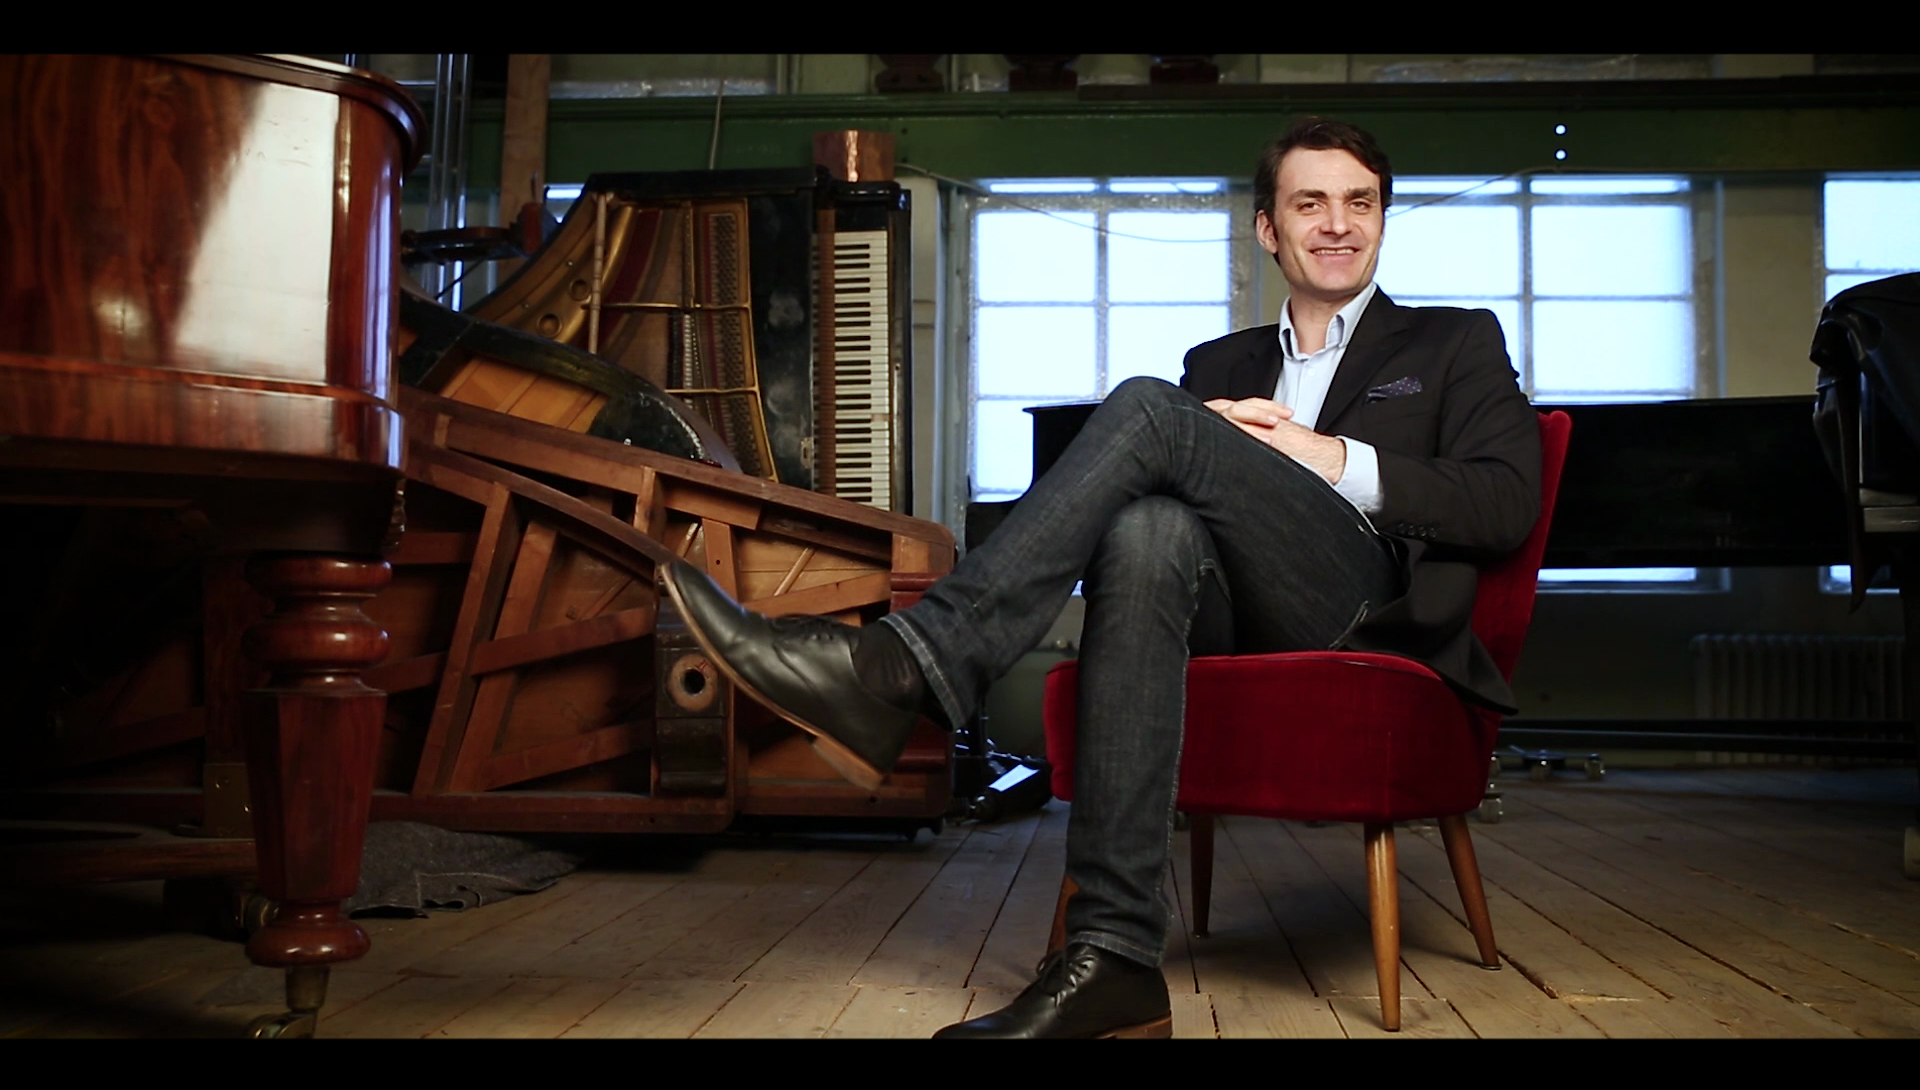 Ulster University's international musician in residence Ivan Ilic to perform on Magee campus